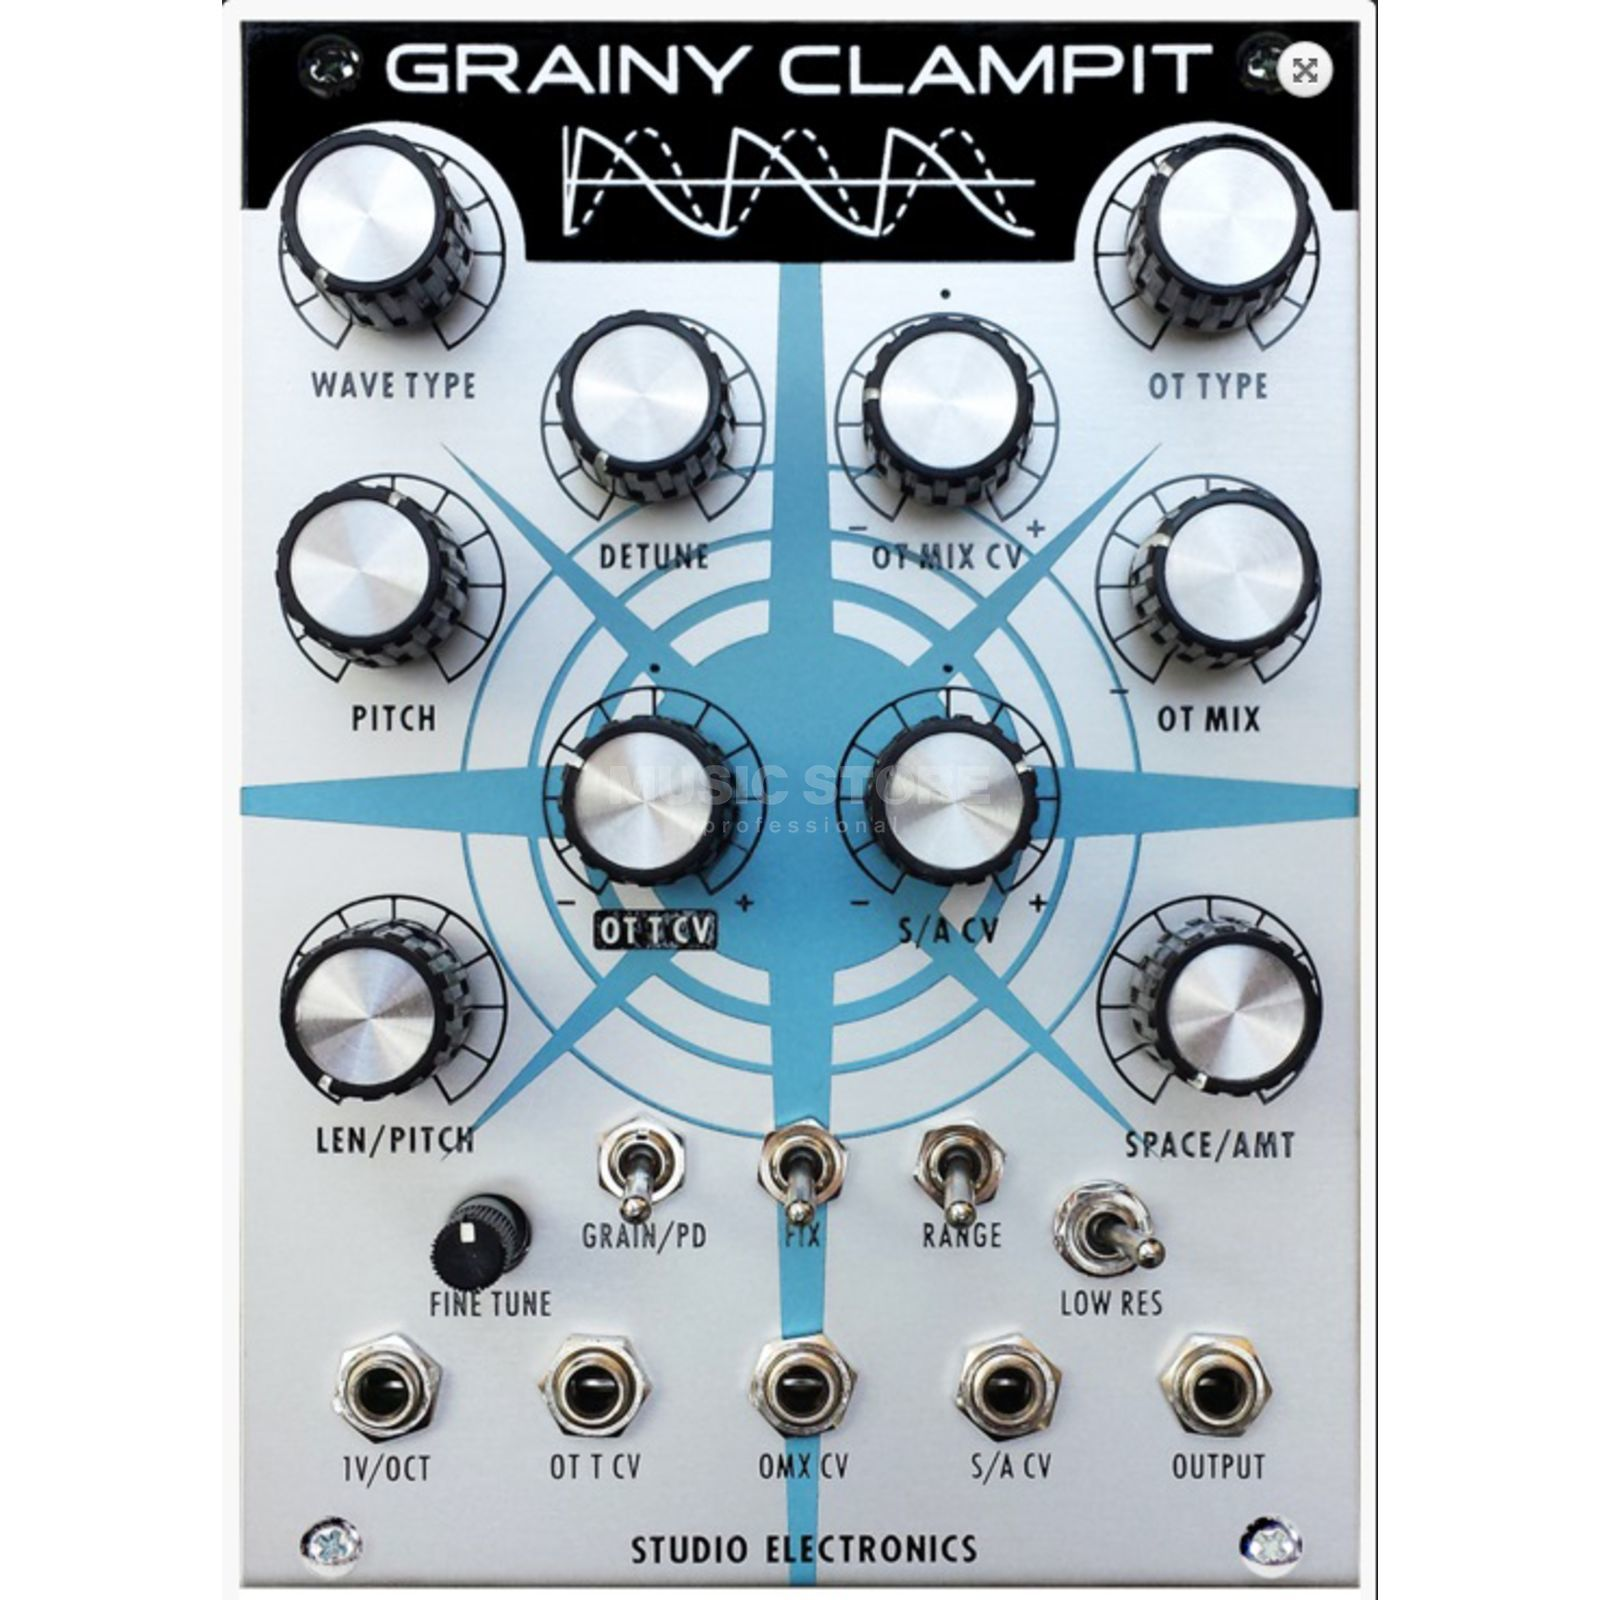 Studio Electronics Grainy Clamp it Oscillator Graincloud Product Image